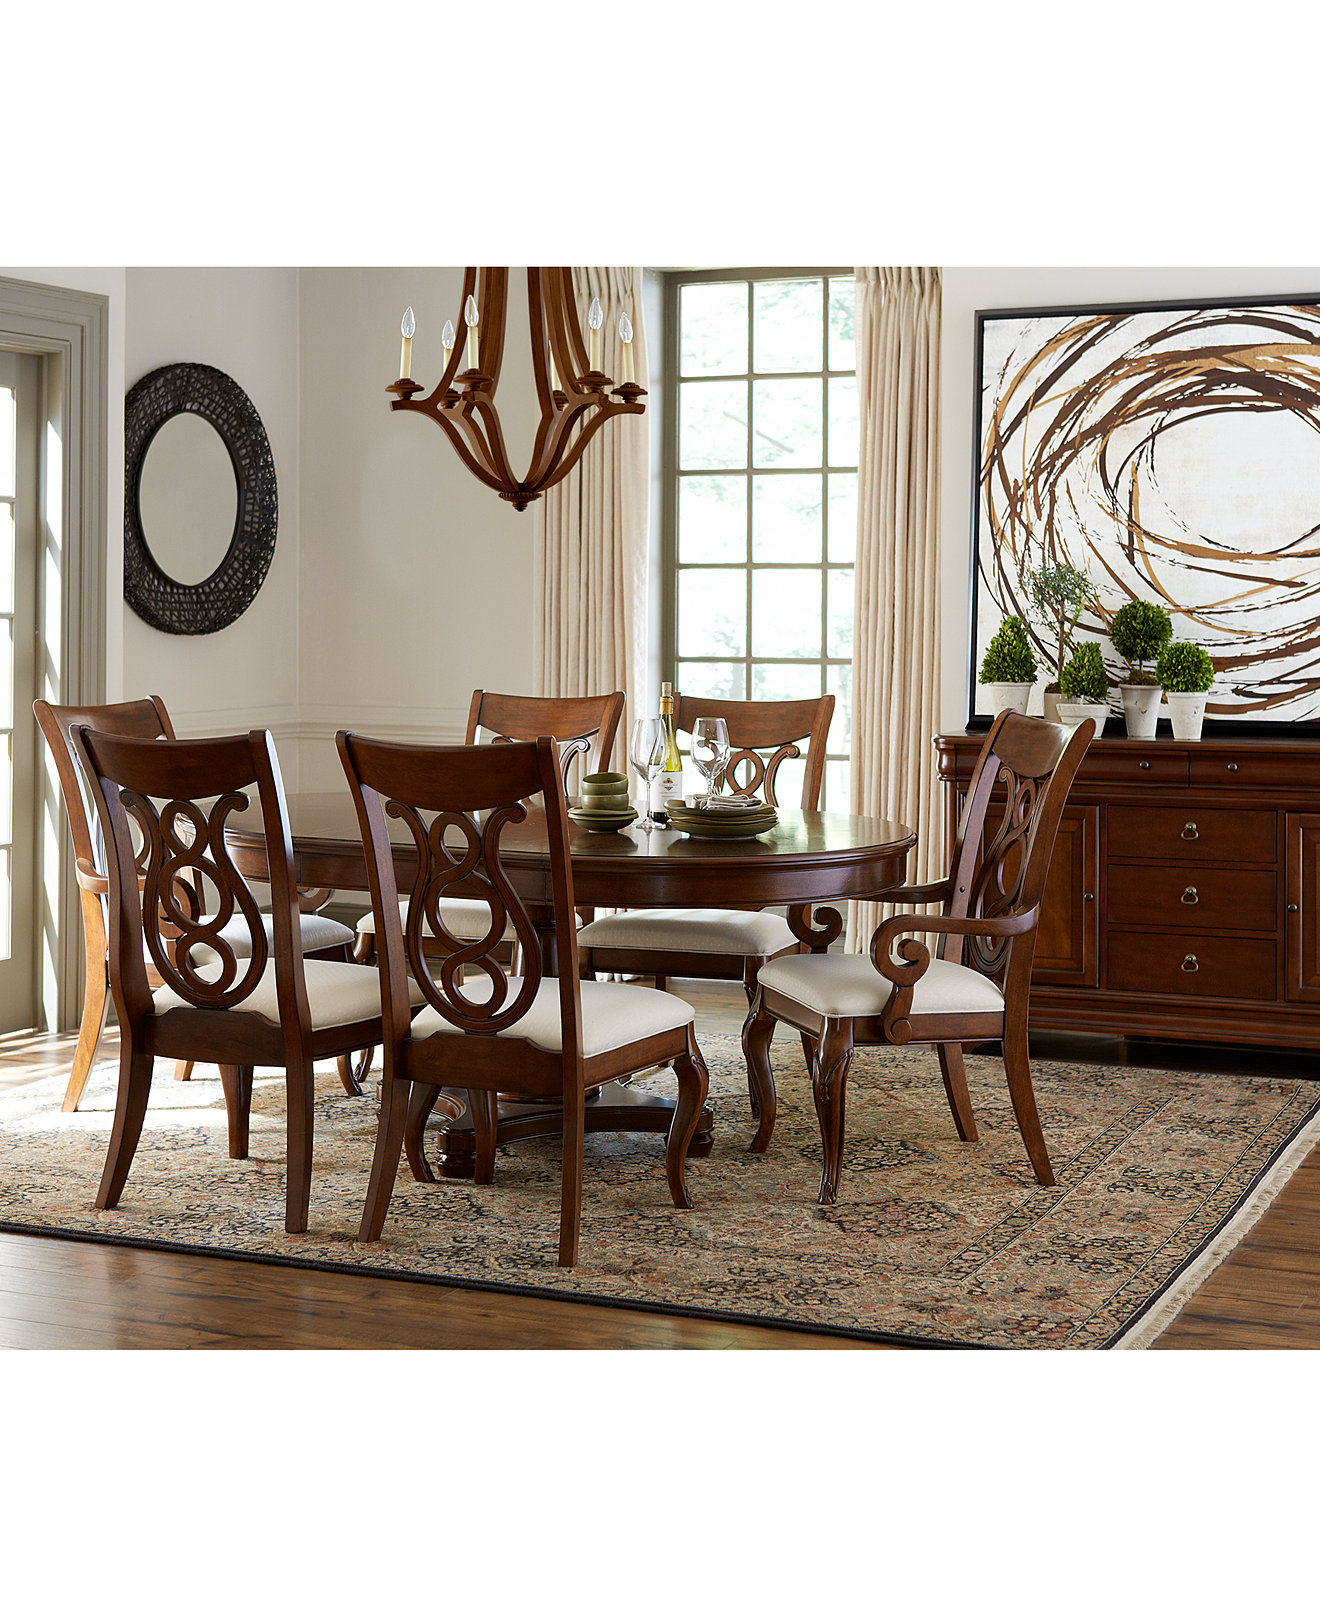 Ro round dining room sets for sale - Bordeaux Pedestal Round Dining Room Furniture Collection Only At Macy S